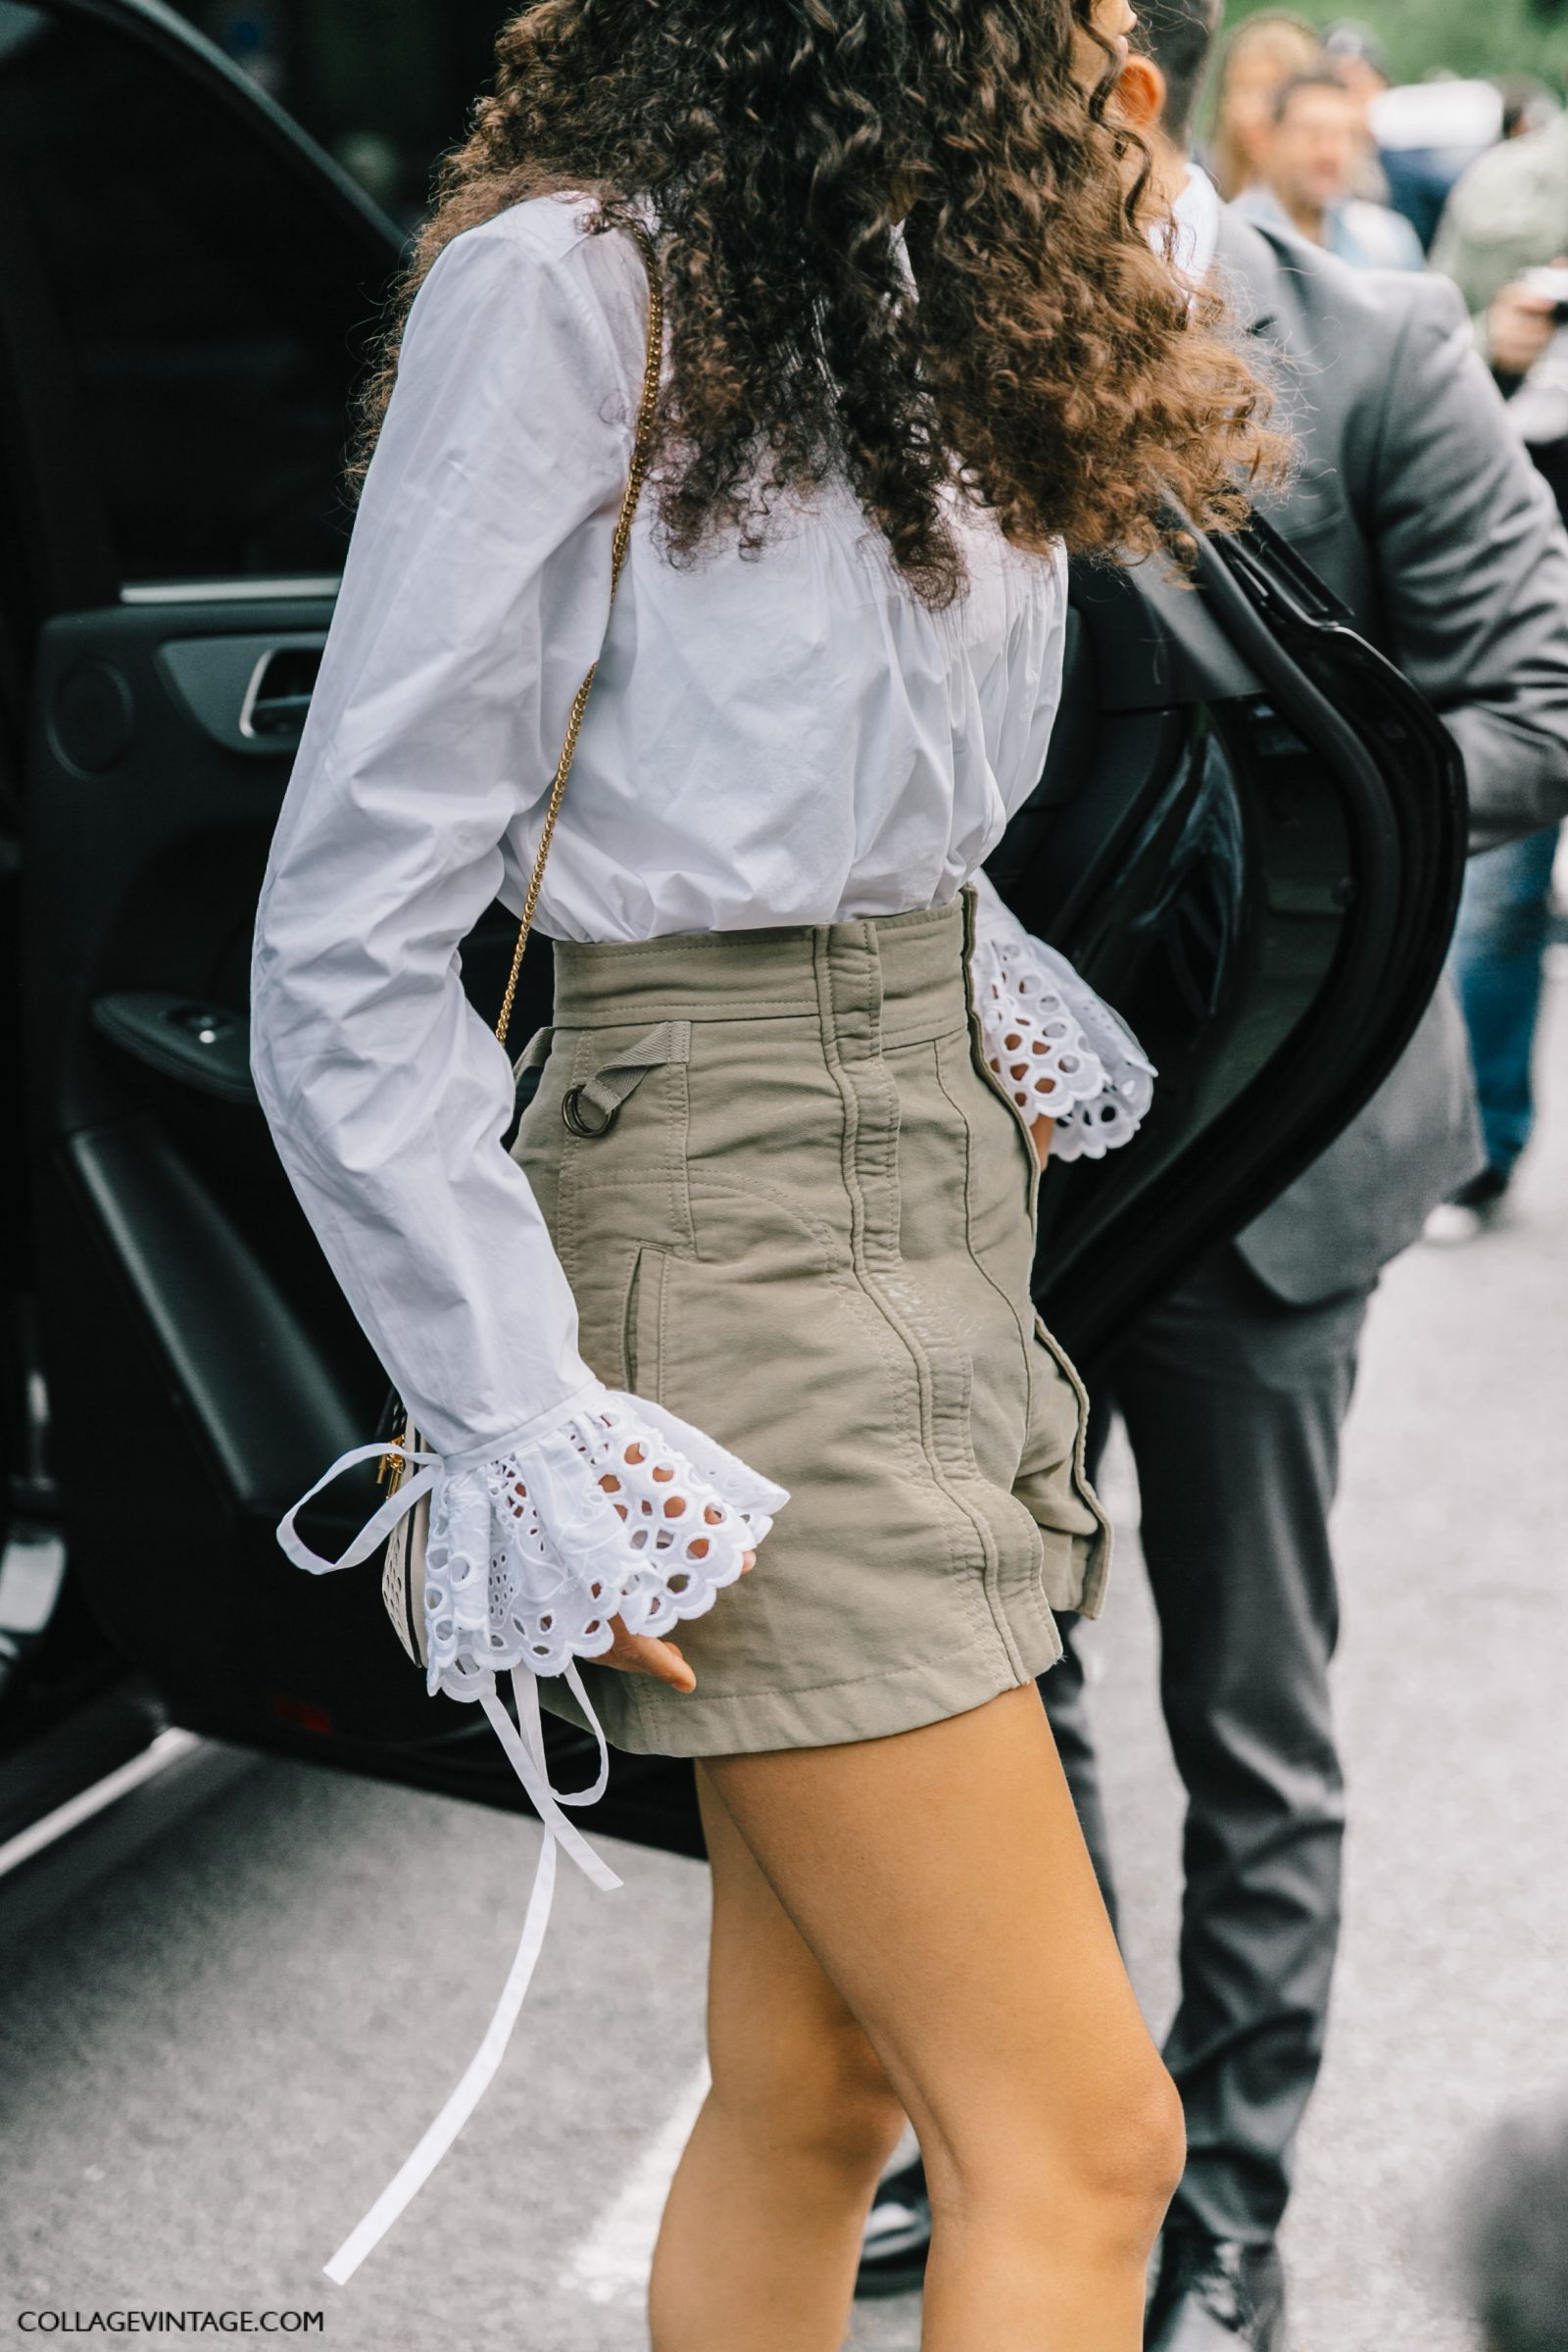 pfw-paris_fashion_week_ss17-street_style-outfits-collage_vintage-chloe-carven-balmain-barbara_bui-10